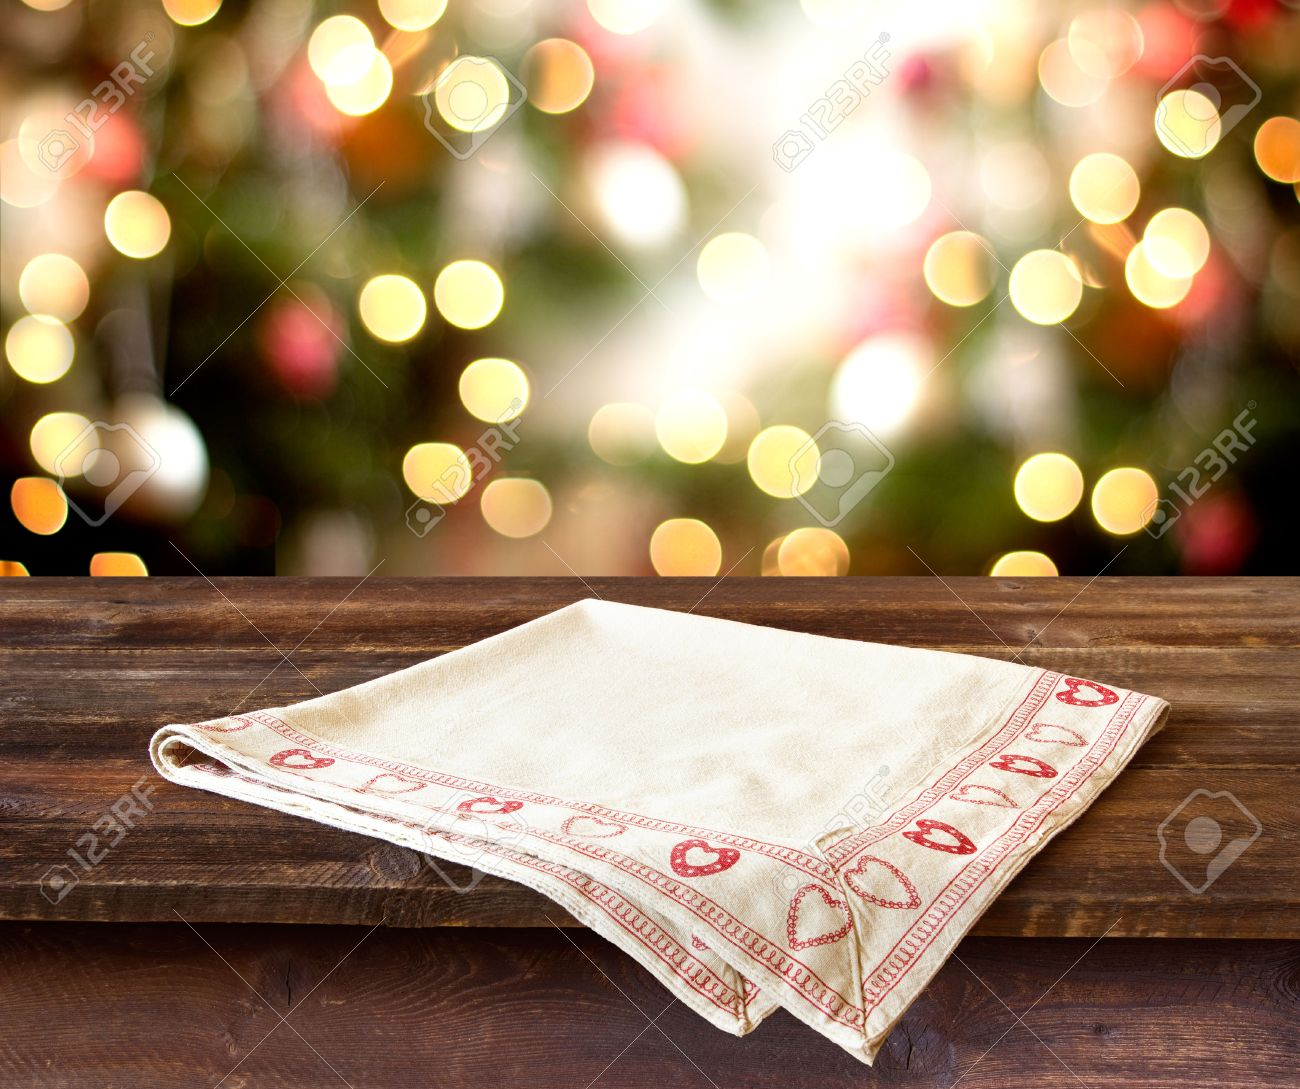 Christmas holiday background with rustic table over christmas bokeh for product montage - 32568885